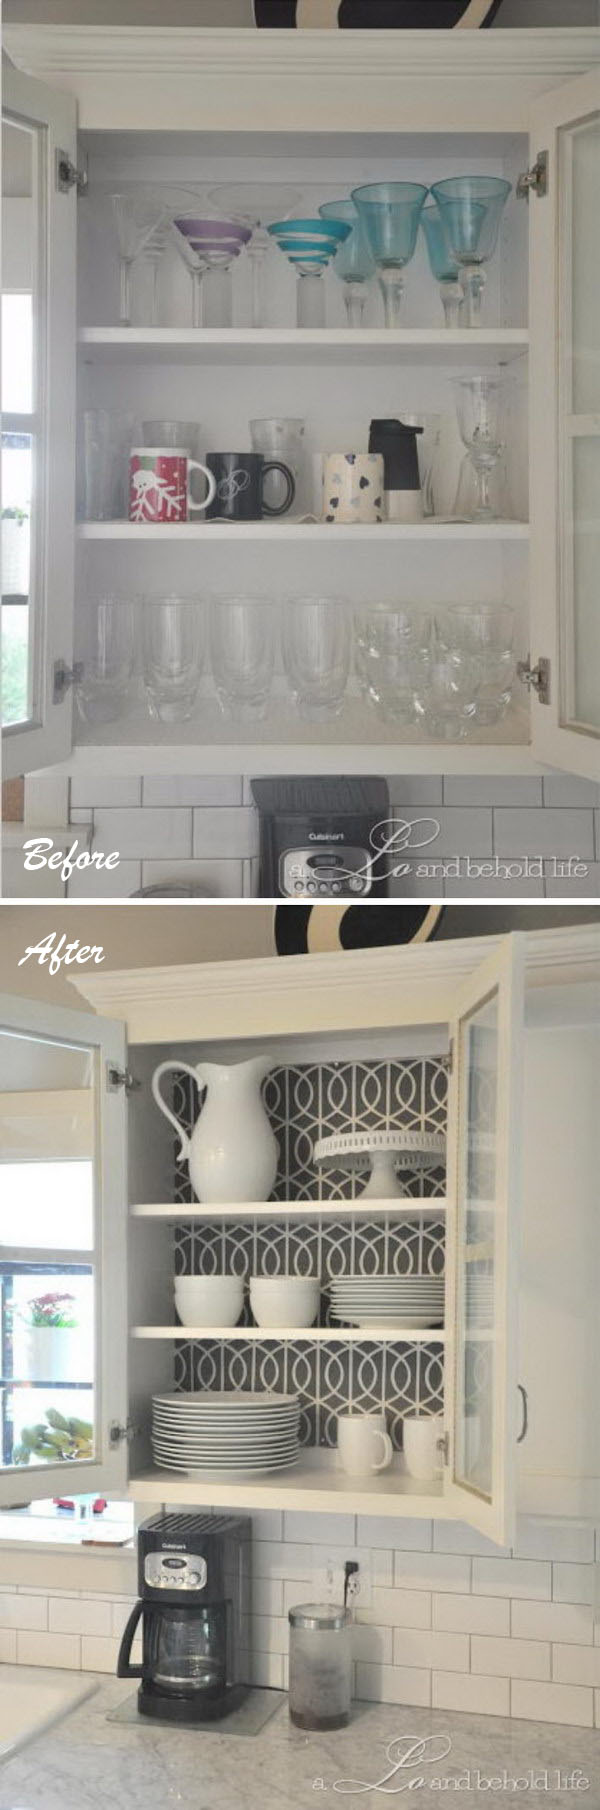 Make a Statement in Your Kitchen by Simply Replacing Backs of a Cabinet.